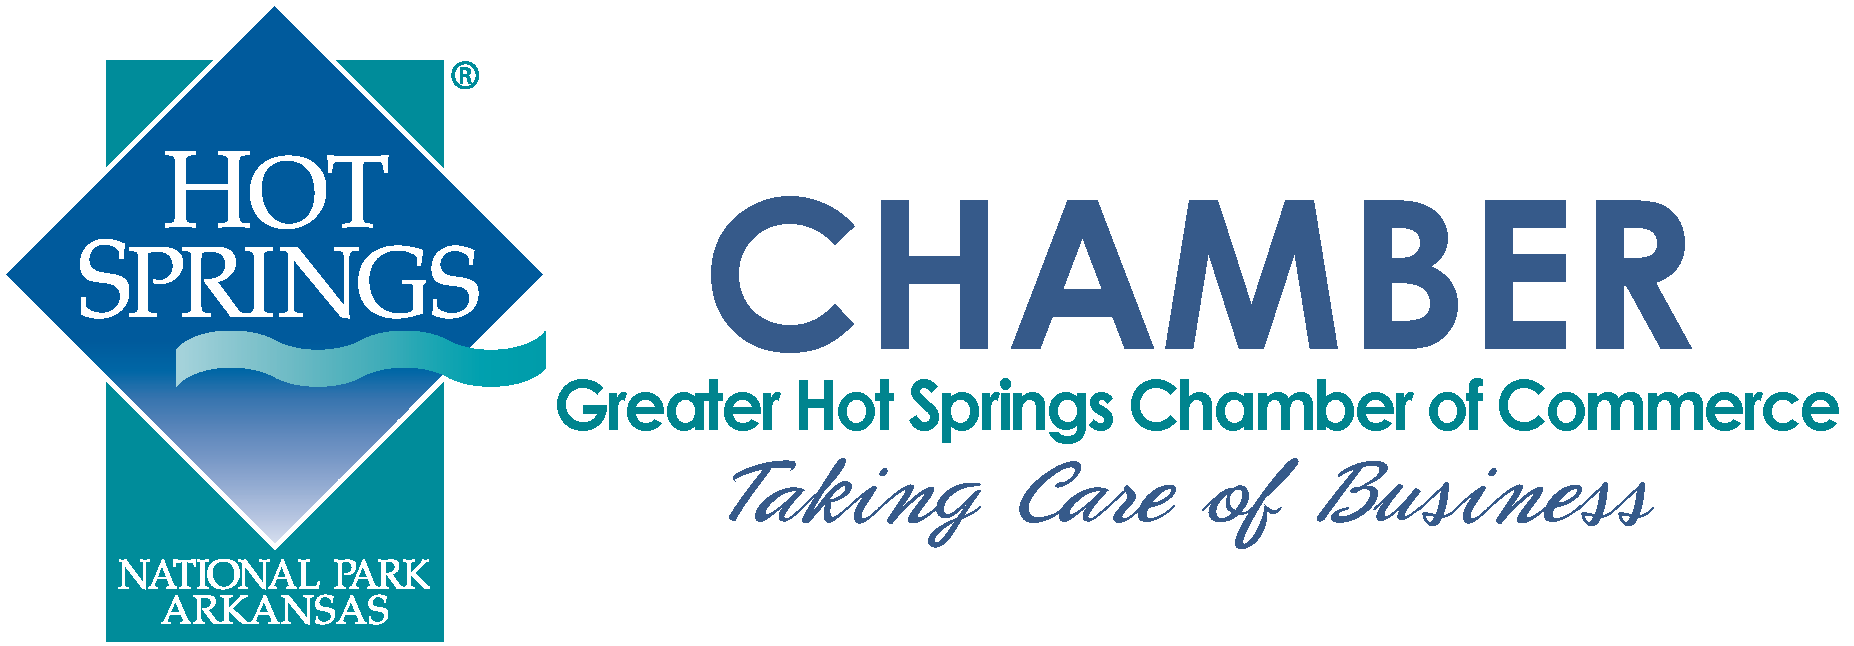 ark n spark electric is a proud member of hot springs chamber of commerce